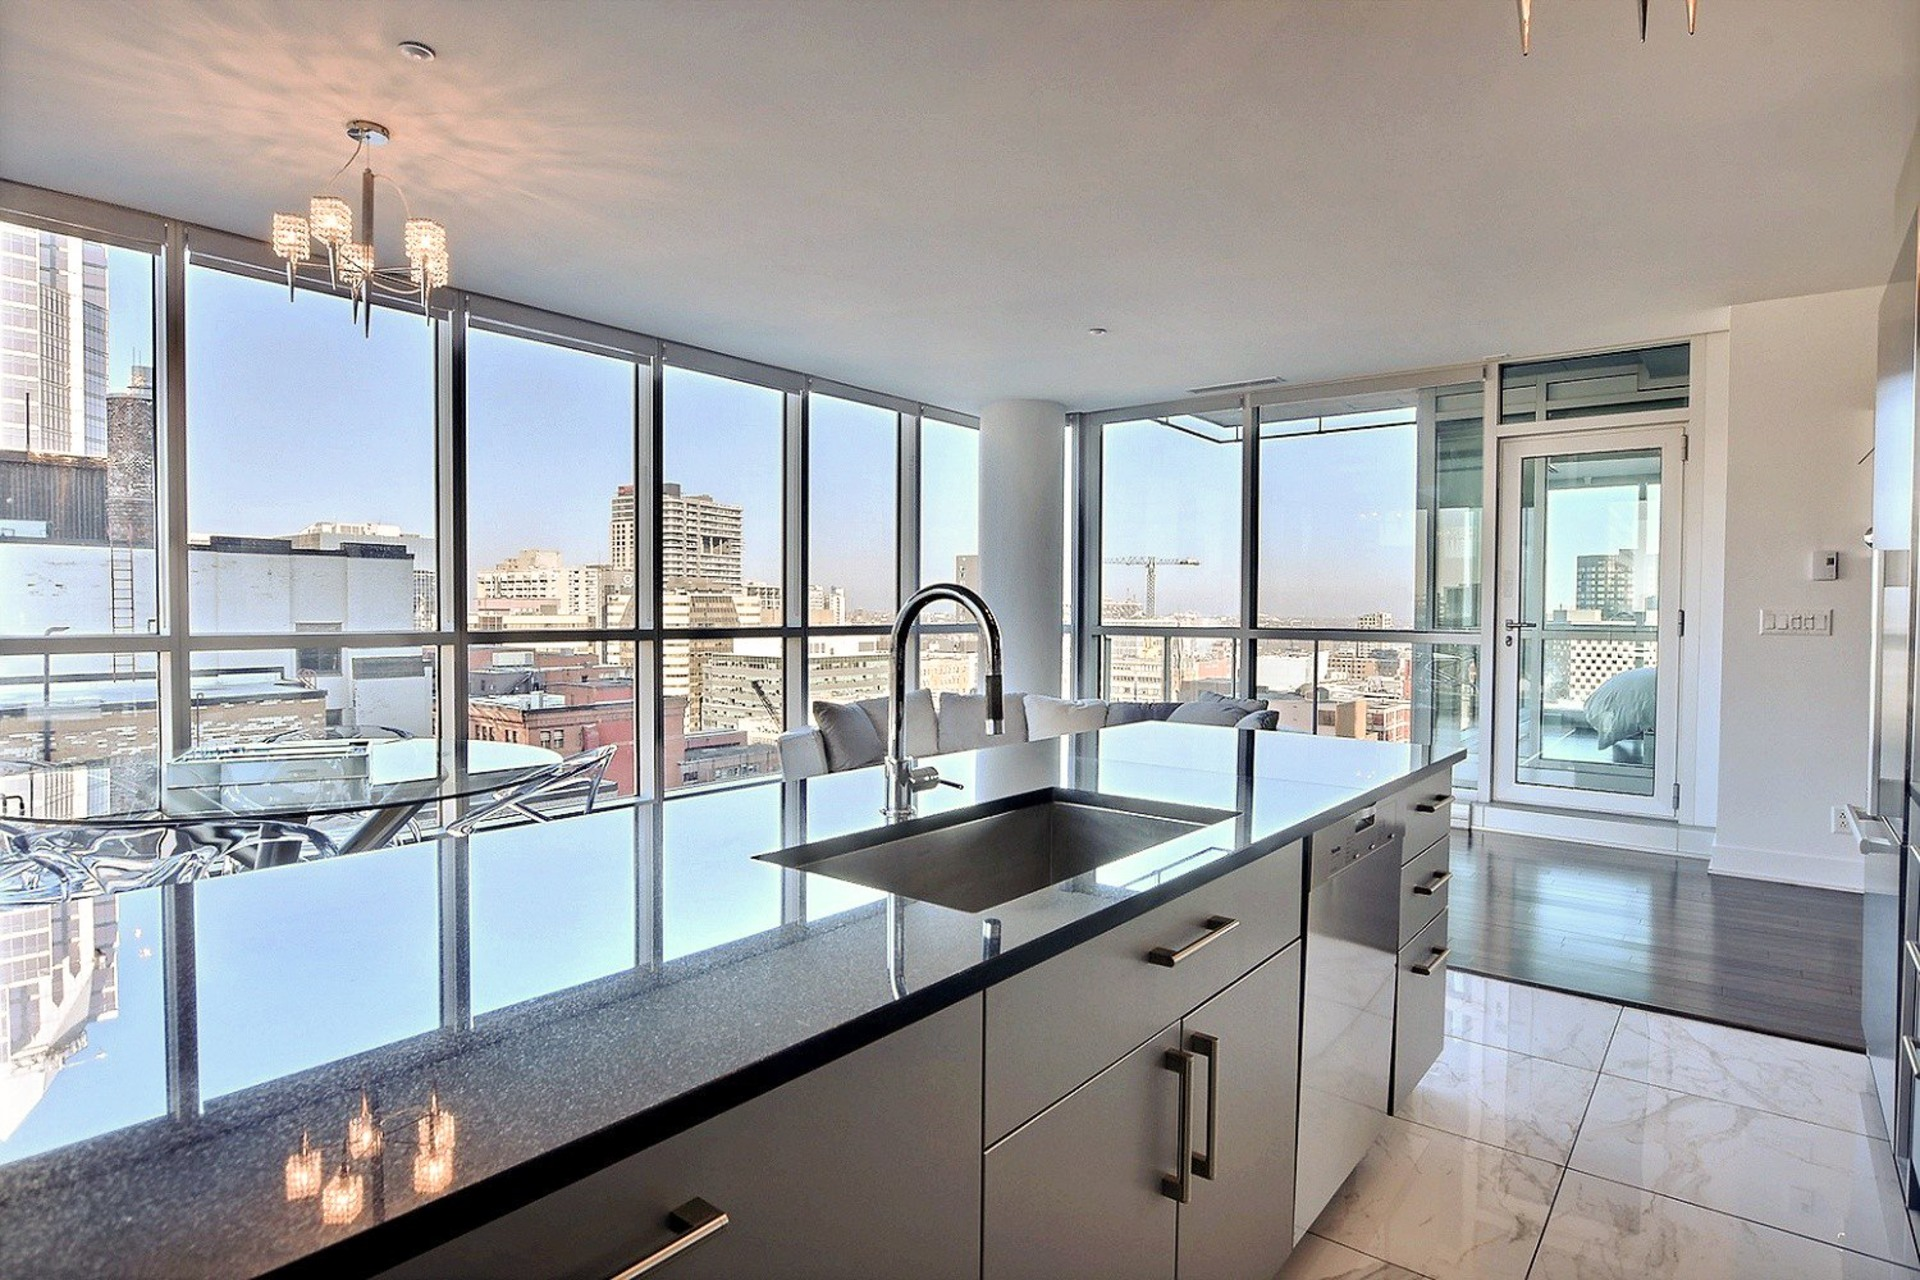 Apartment For sale Montréal Ville-Marie  - 5 rooms